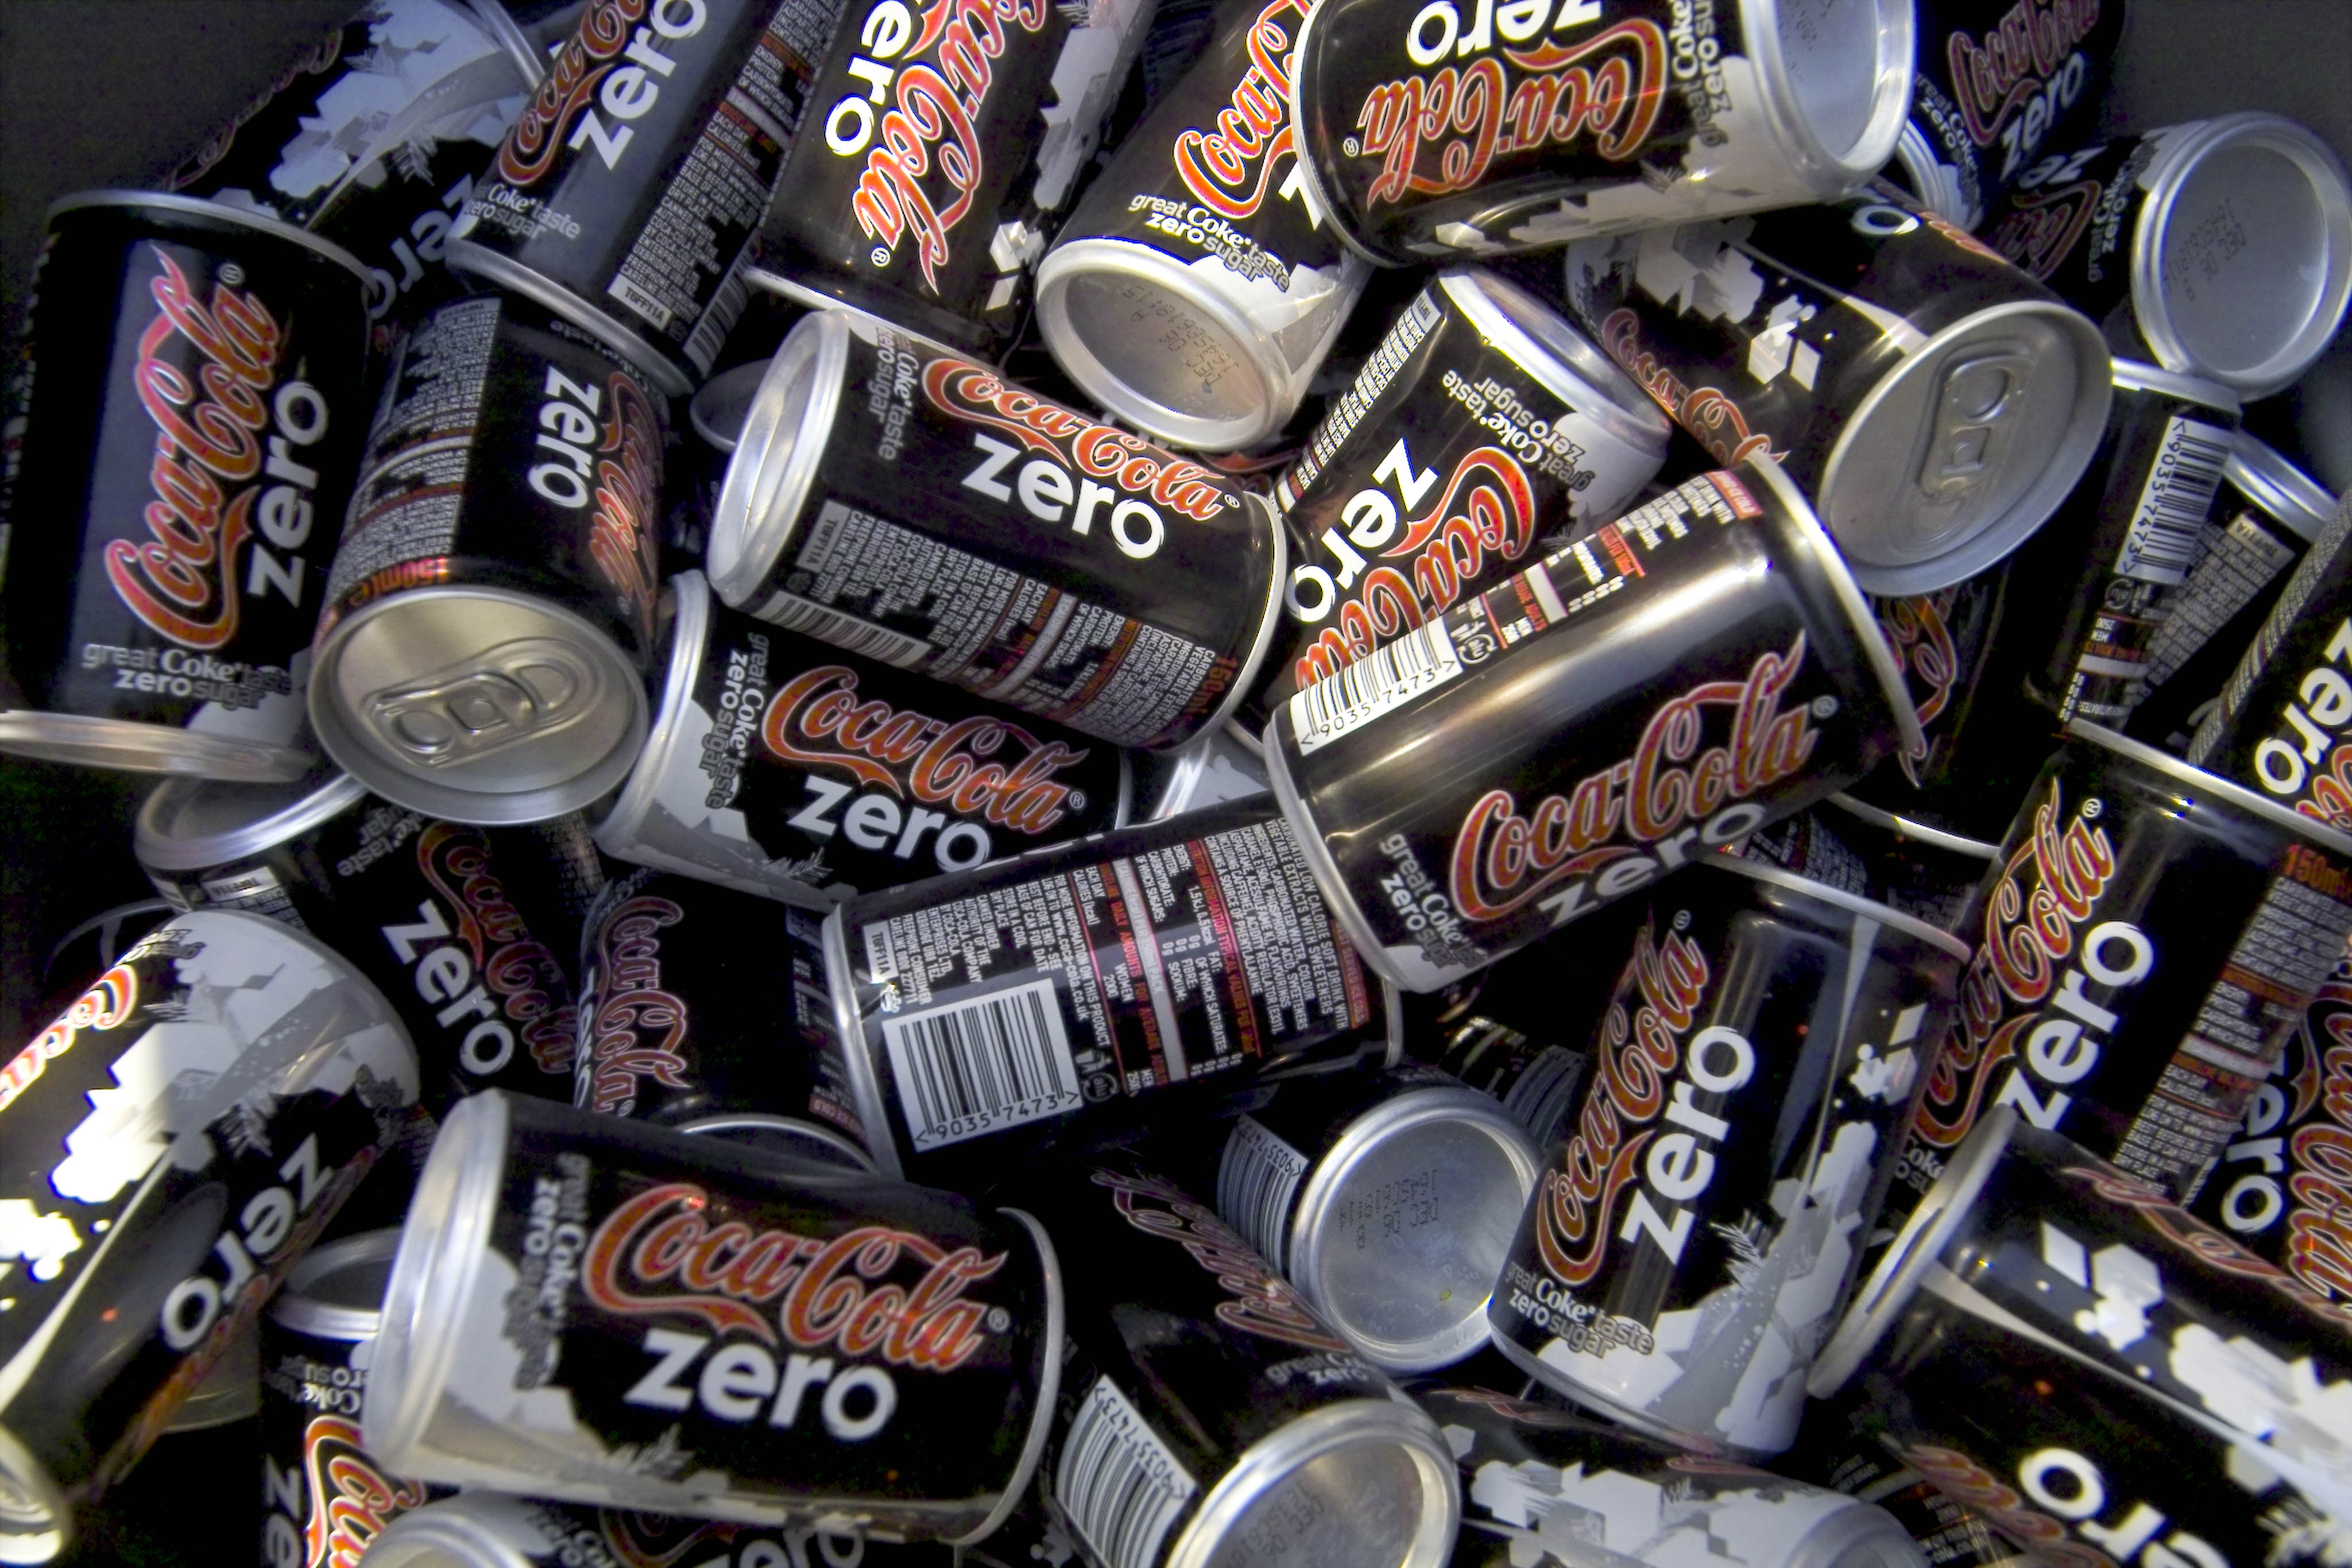 Cans of Coca-Cola's new 'Zero' product are seen in a cooler